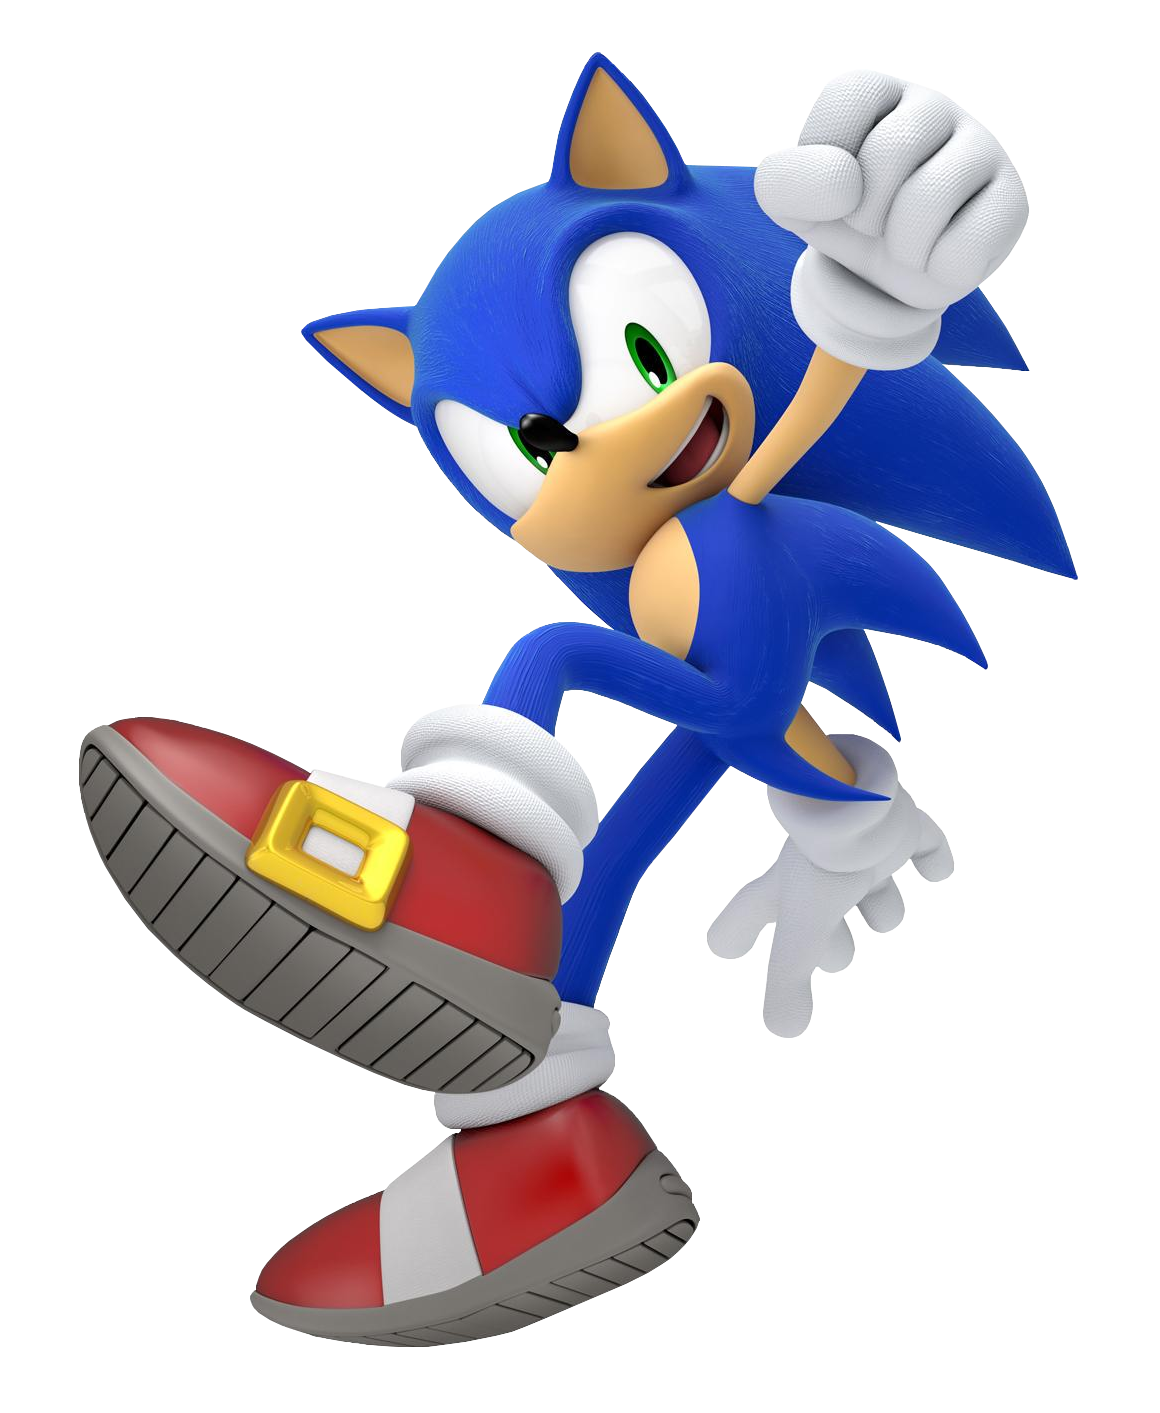 sonic the hedgehog - photo #12